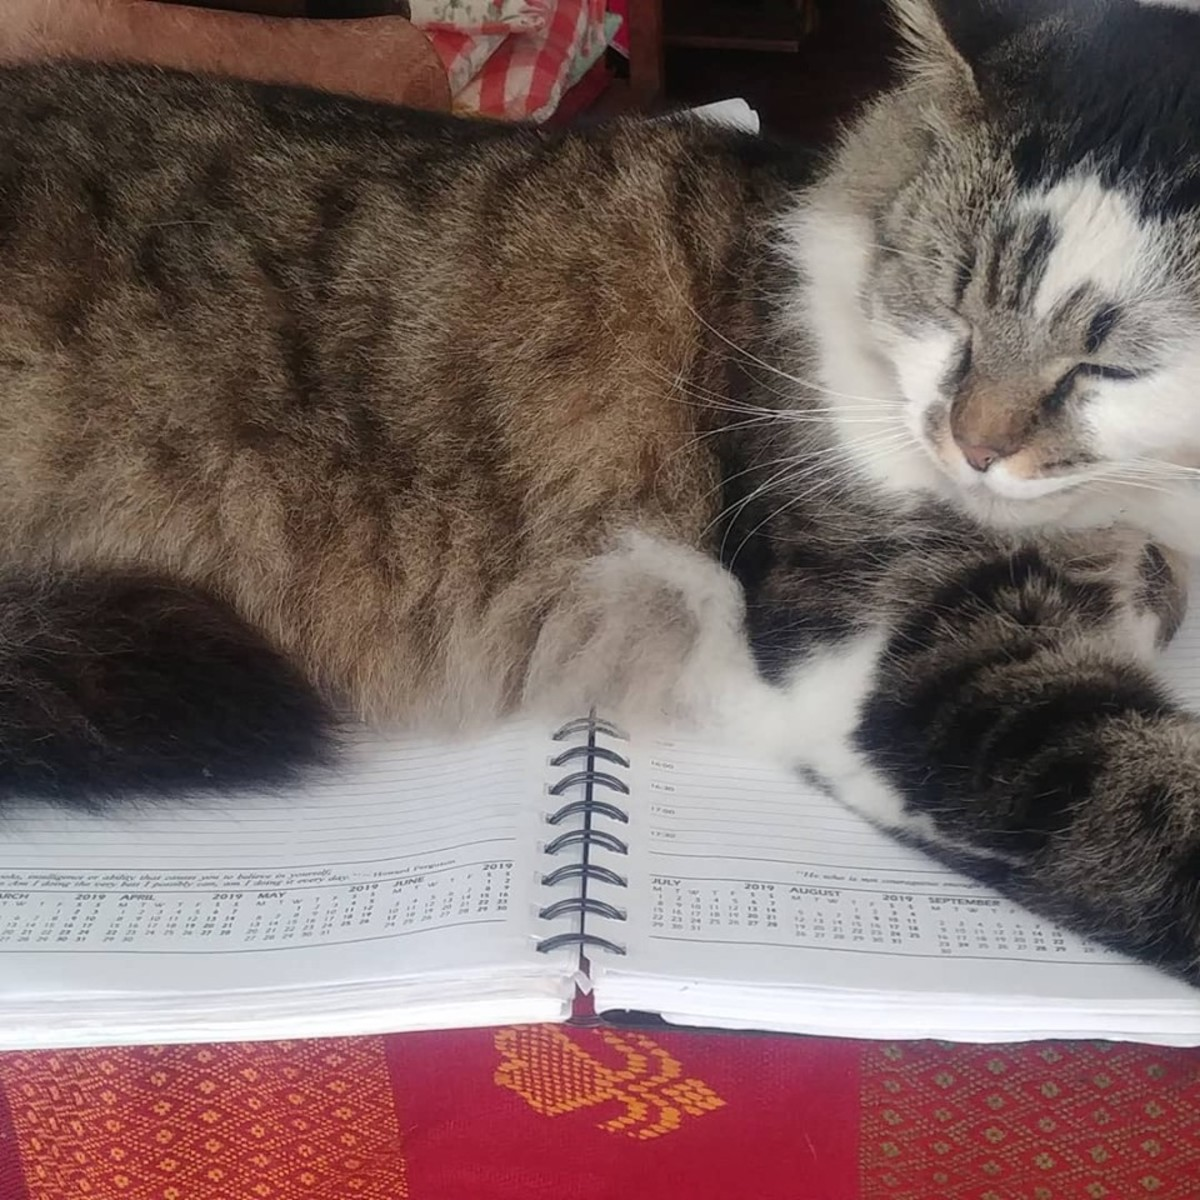 My cat with his very full diary